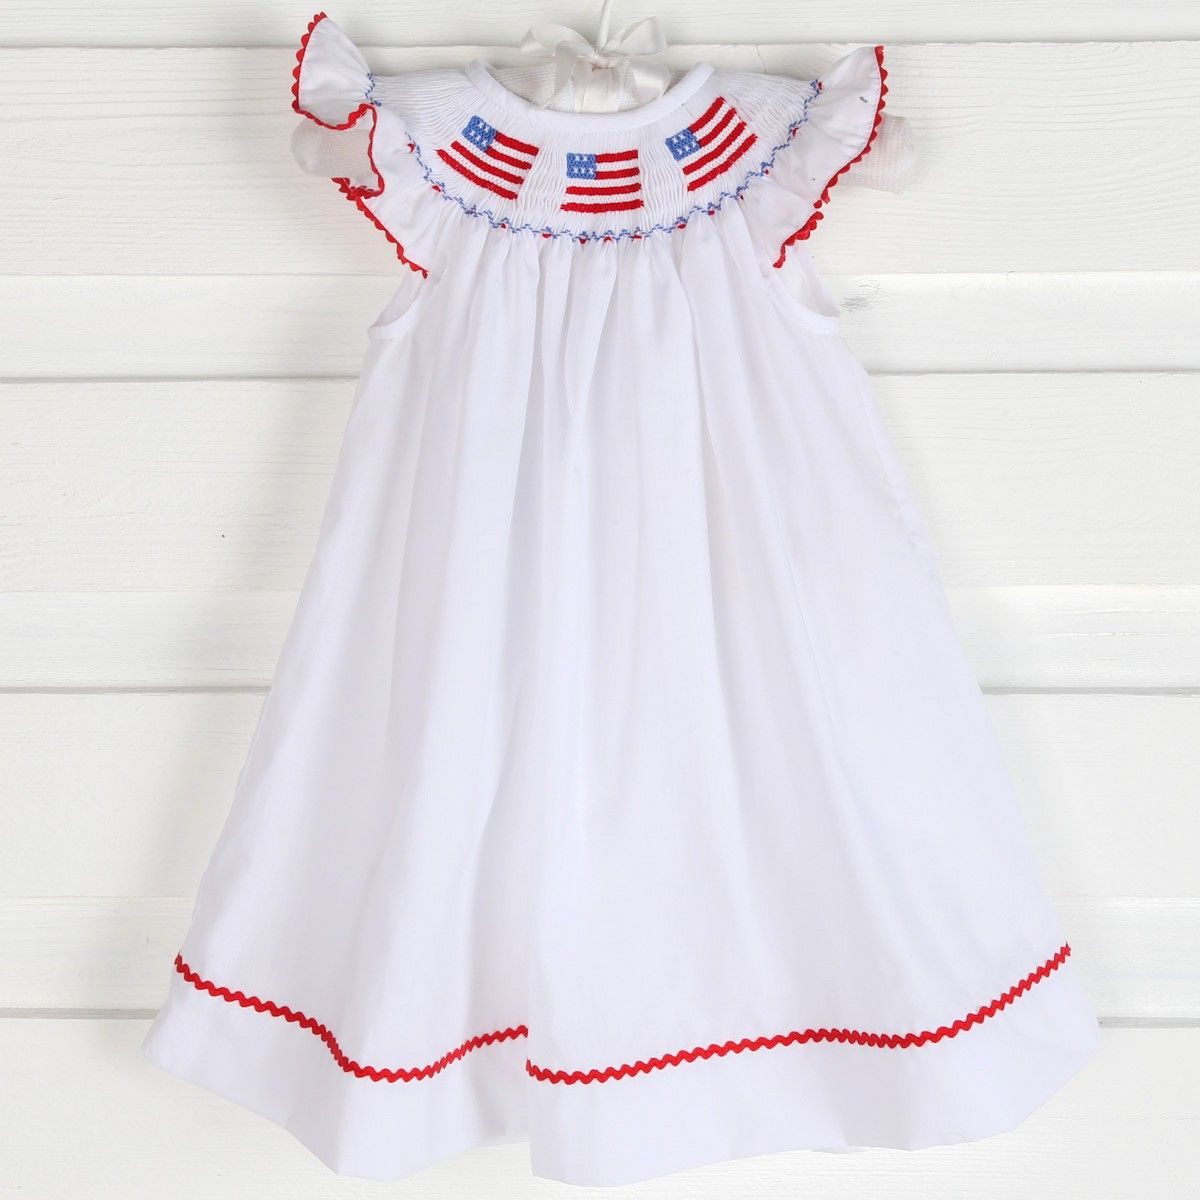 Smocked Patriotic Flag Dress White - Pre-Orders Smocked Auctions